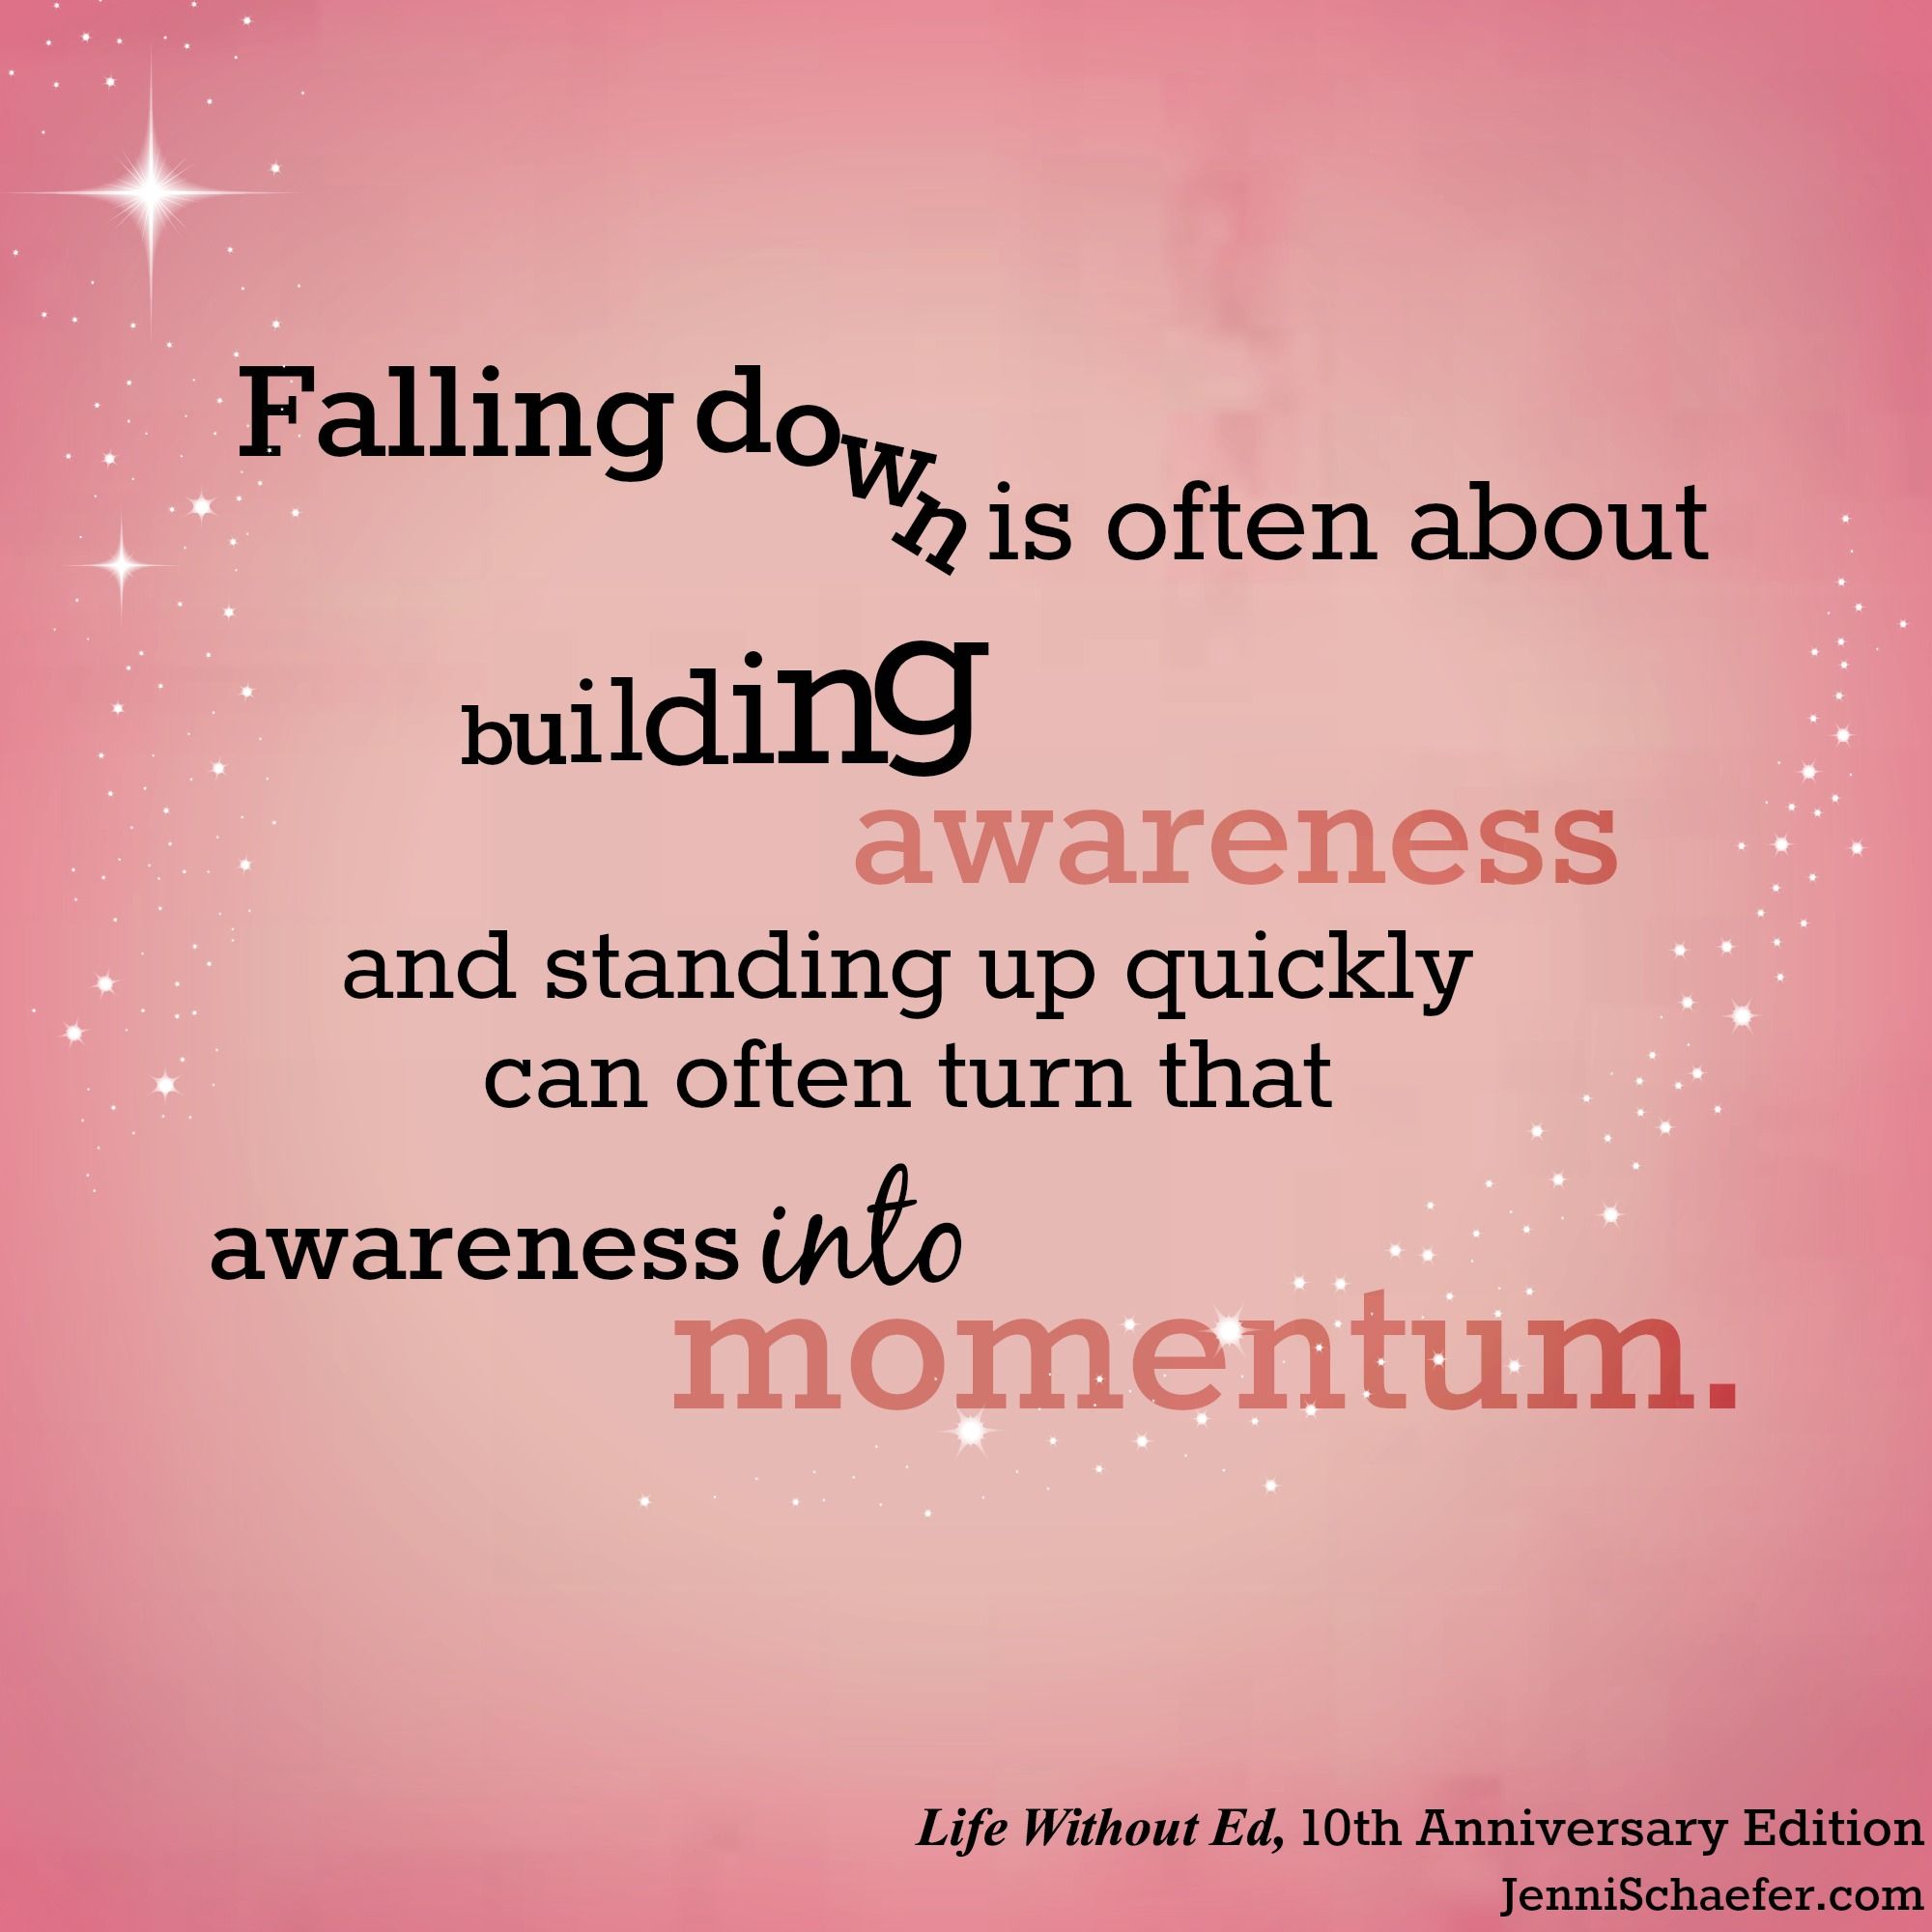 Life Without Freedom Quotes: Eating Disorder & Trauma Advocate, Author, Speaker, Coach